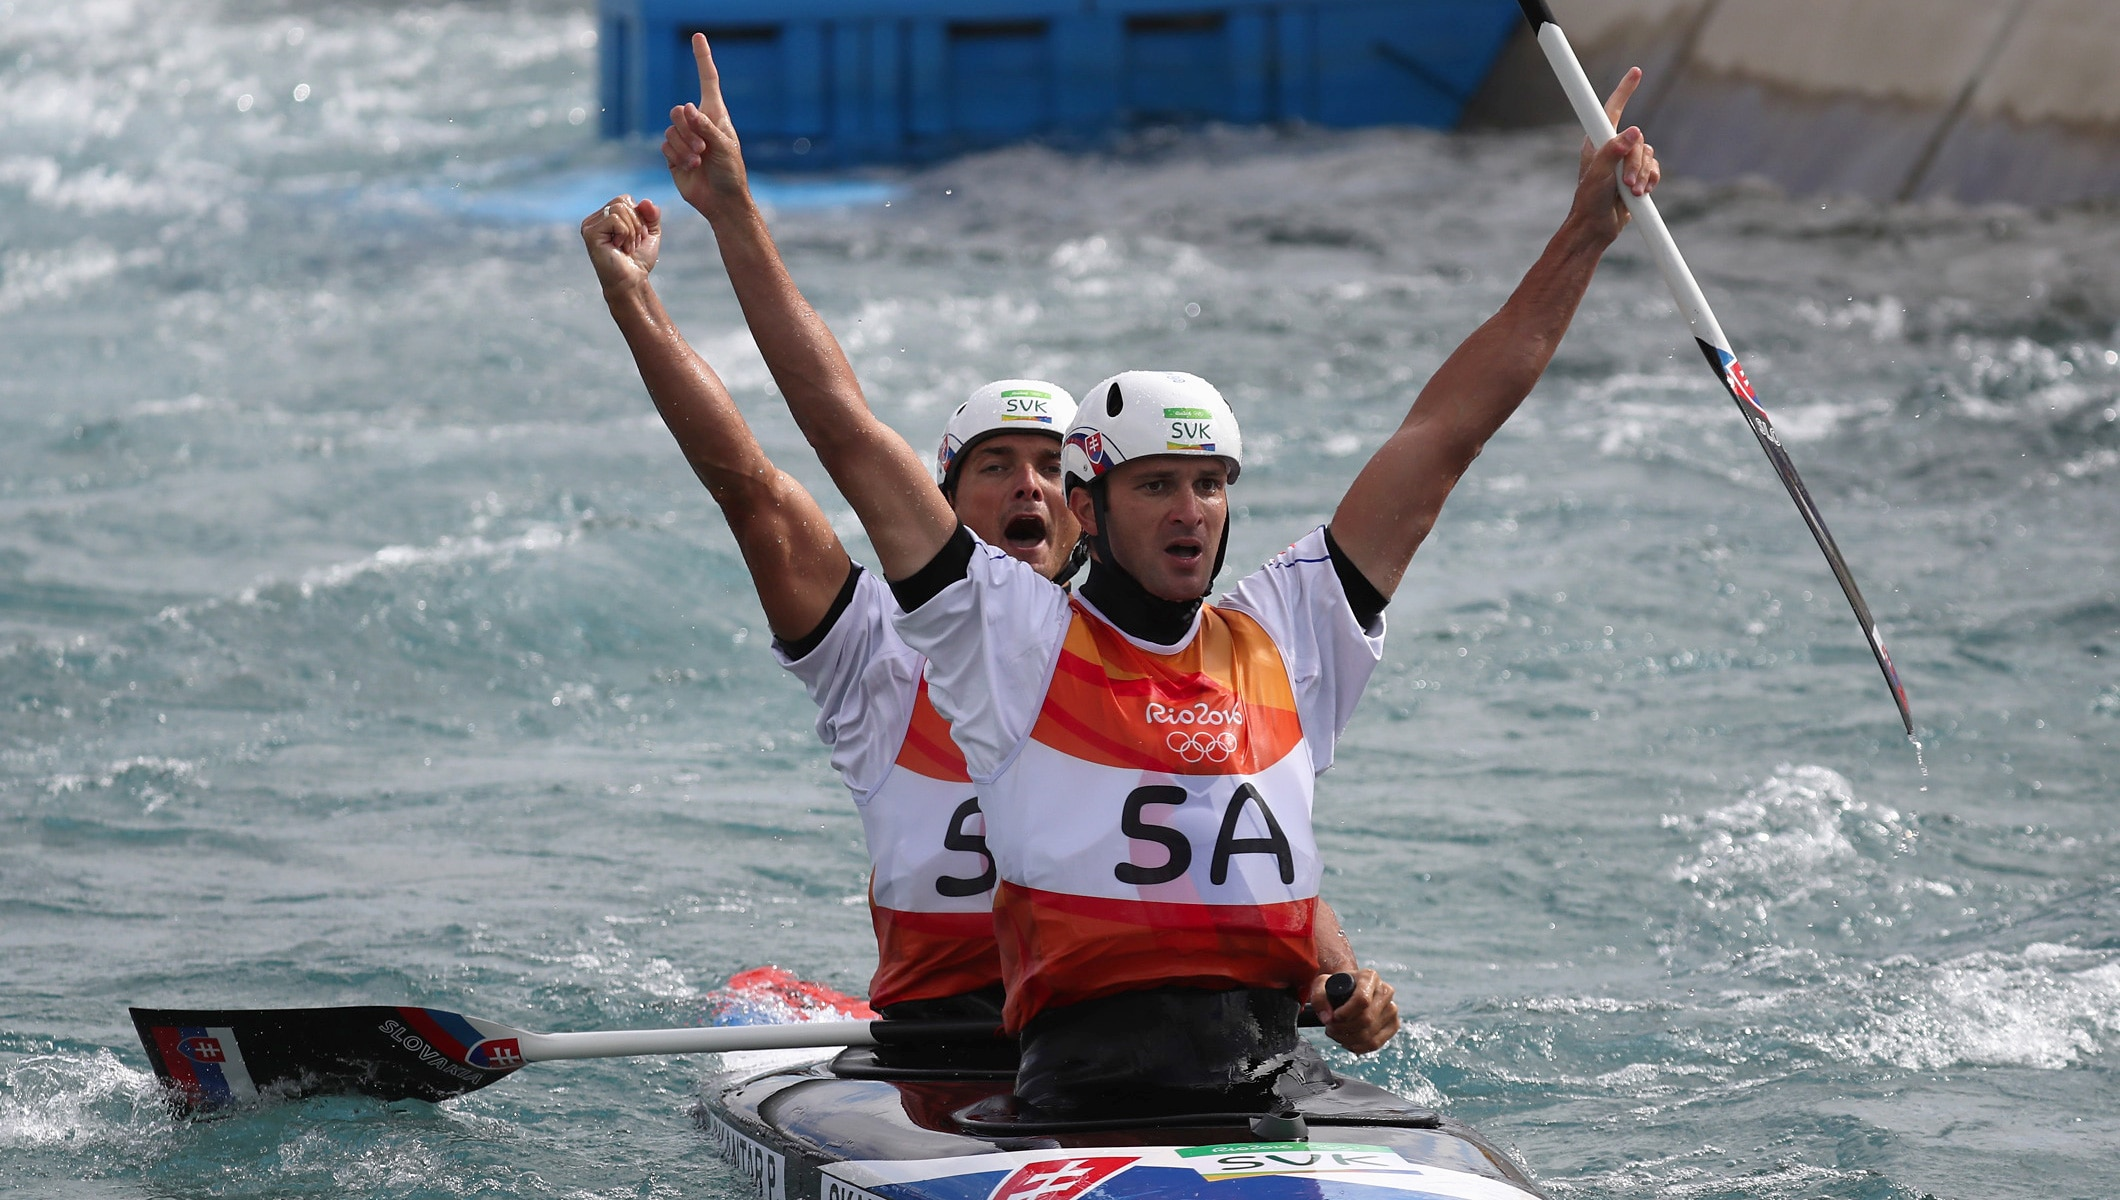 Success For Slovakias Skantar Brothers And Spains Chourraut At The Whitewater Arena